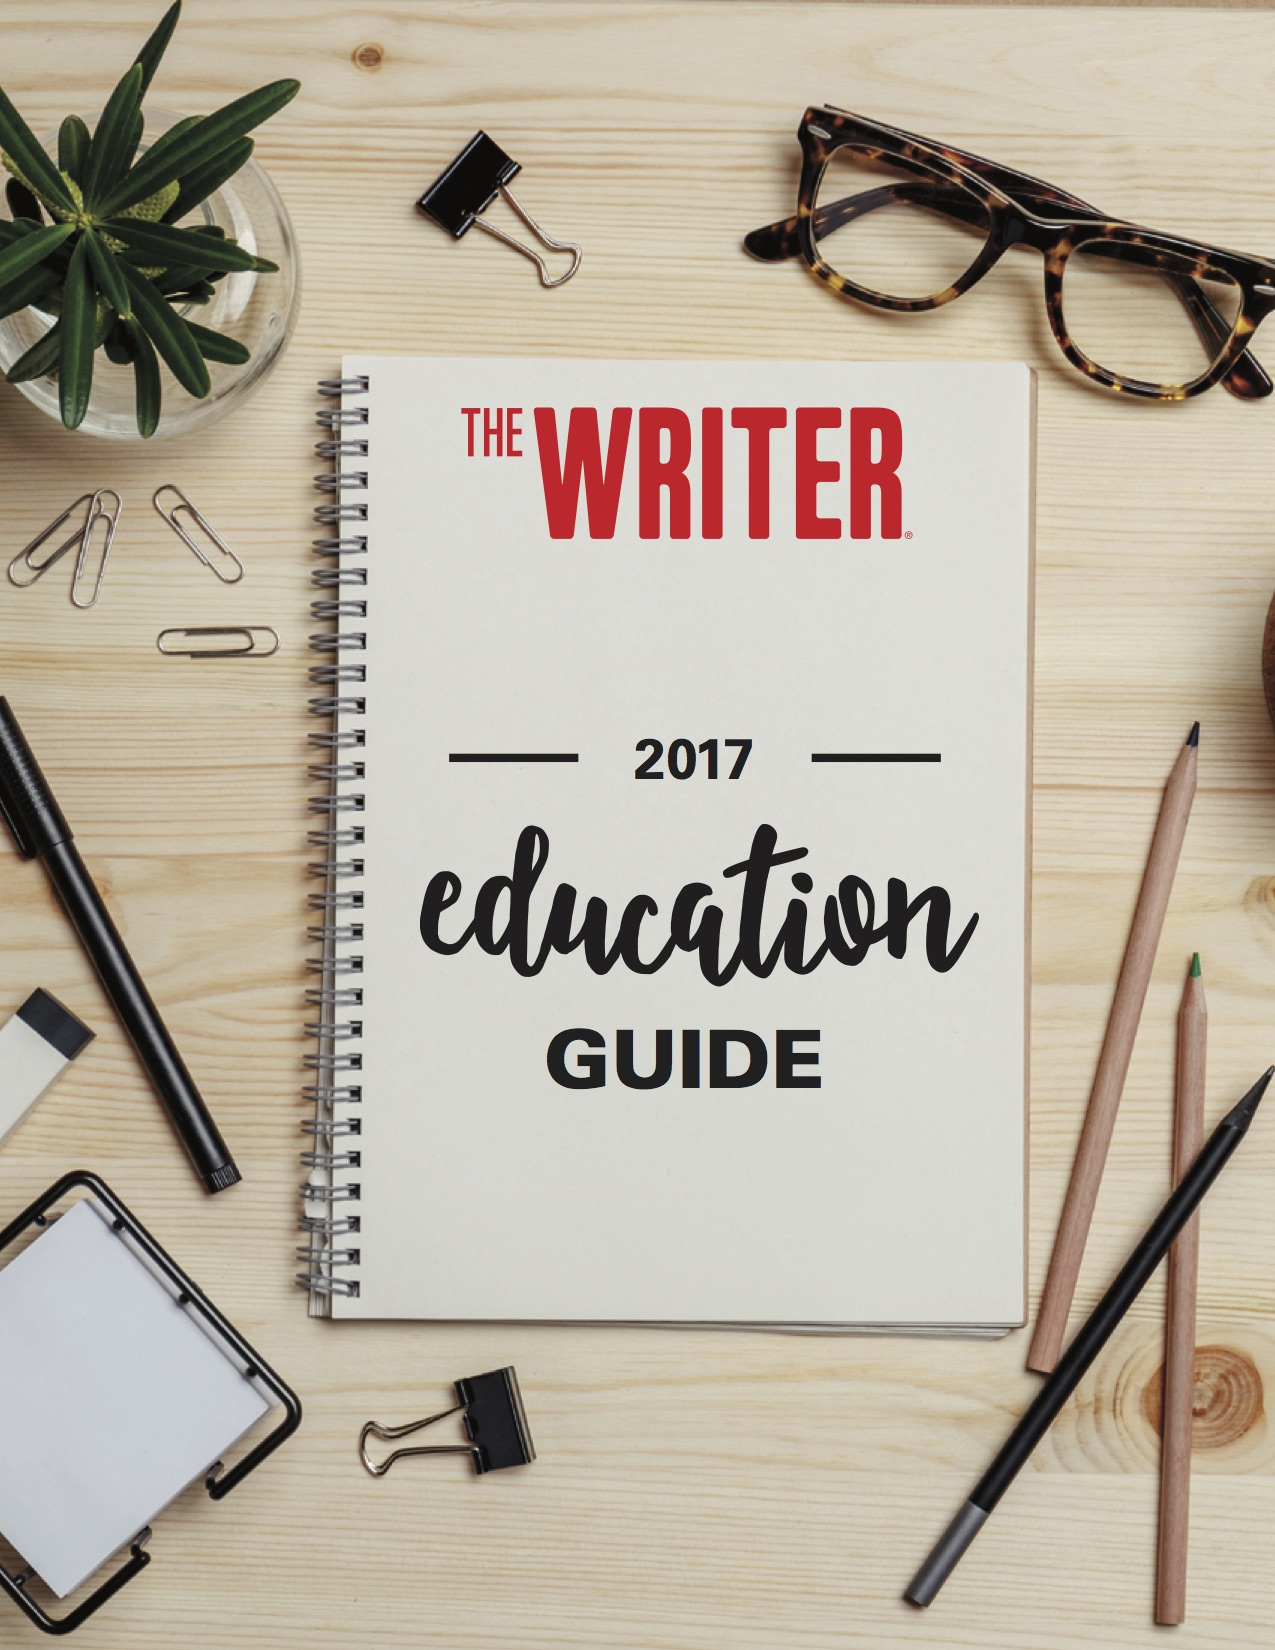 Free Download: 2018 Education Guide